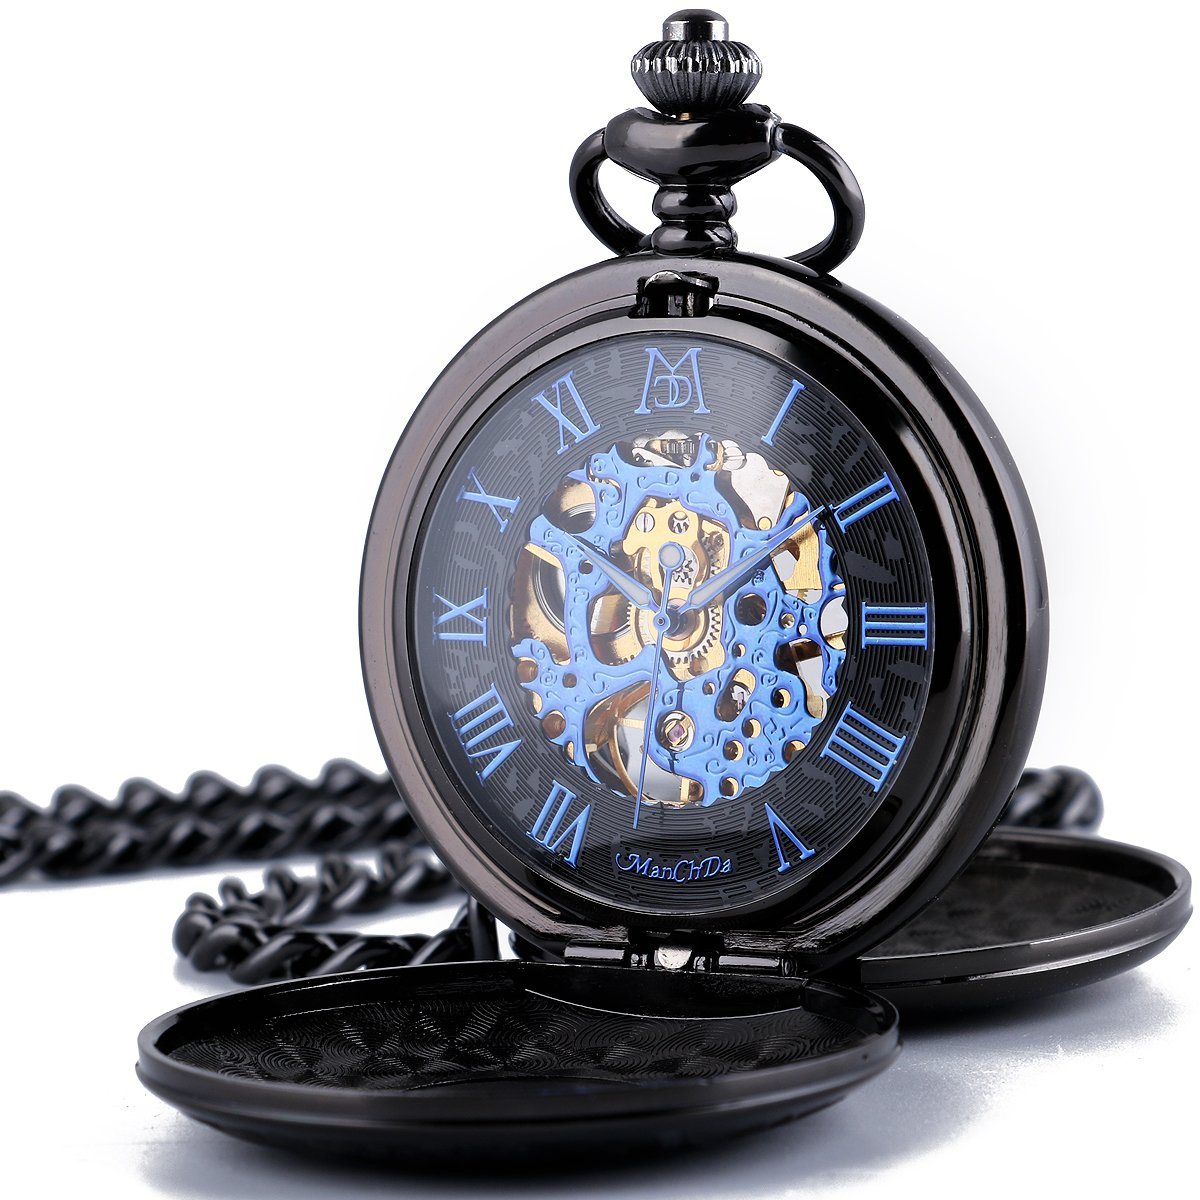 CDM product ManChDa Skeleton Mechanical Hand Wind Pocket Watch Double Hunter for Mens Women (C.Black with blue dial) big image